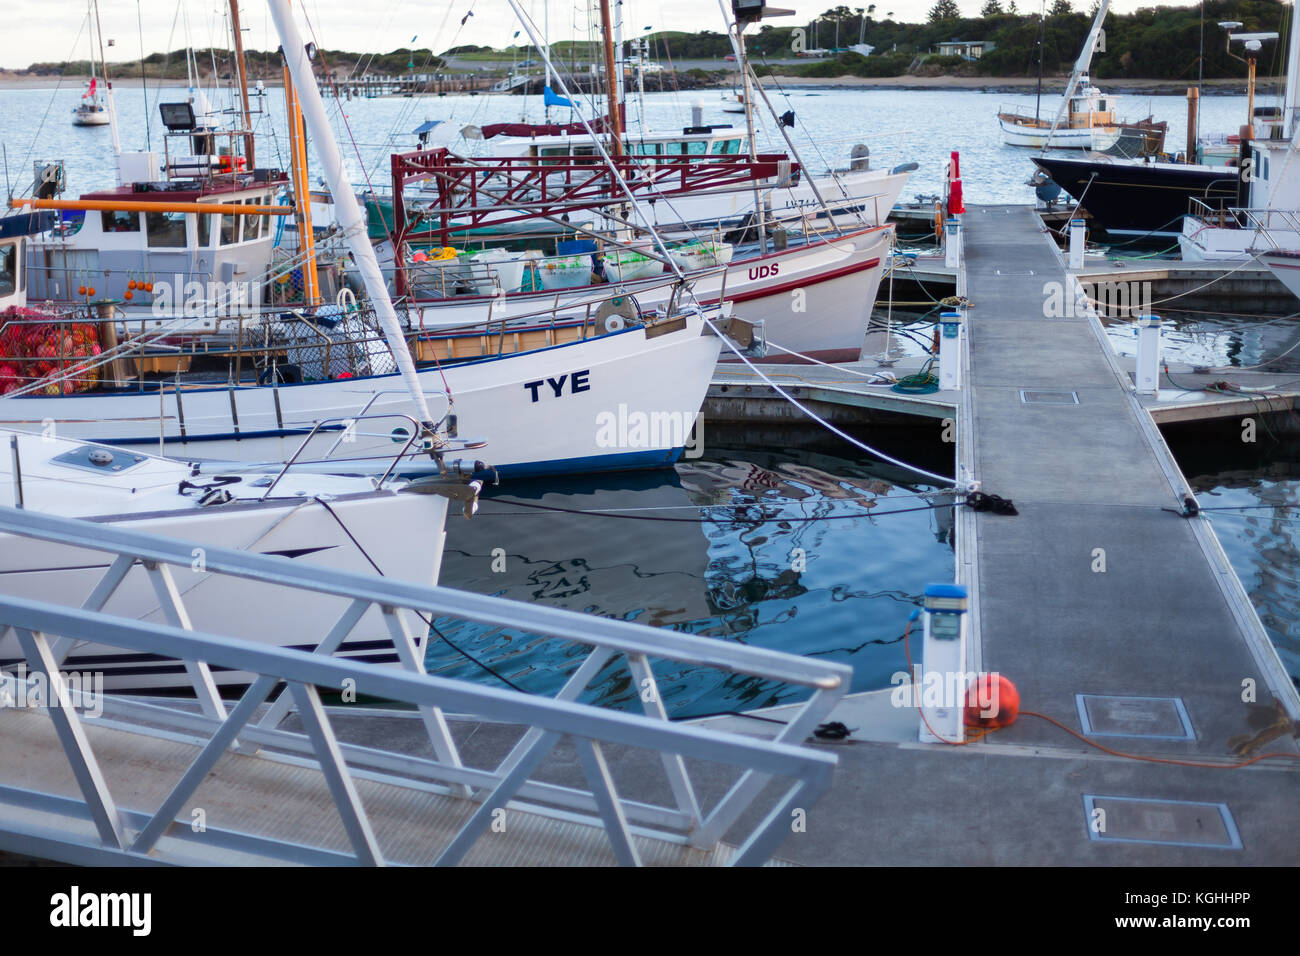 The boat marina at Apollo Bay area, located on the Great Ocean Road, Victoria - Stock Image